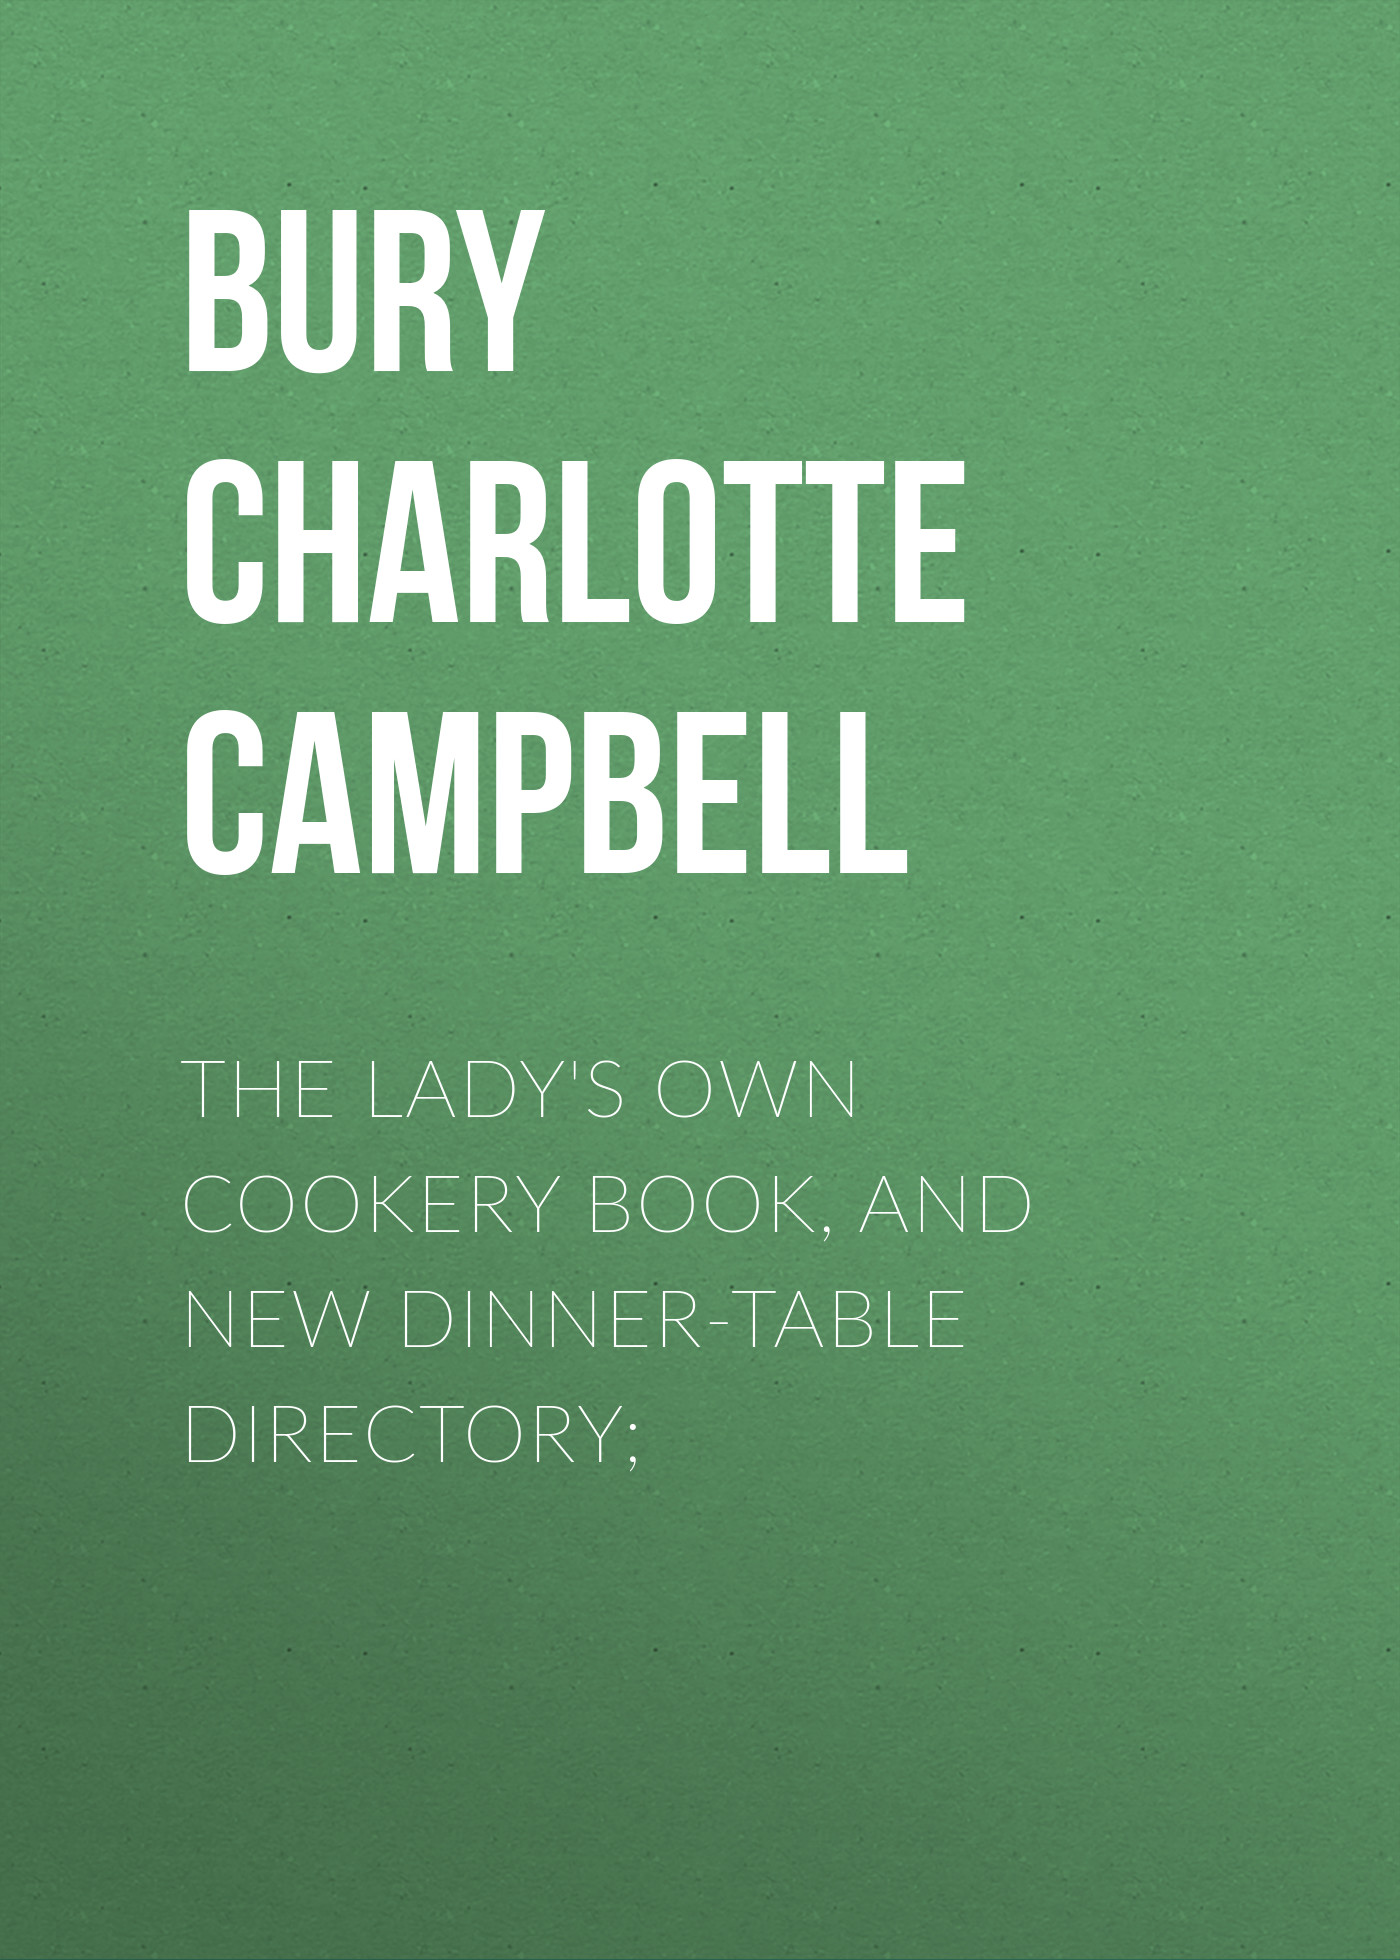 Bury Charlotte Campbell The Lady's Own Cookery Book, and New Dinner-Table Directory;